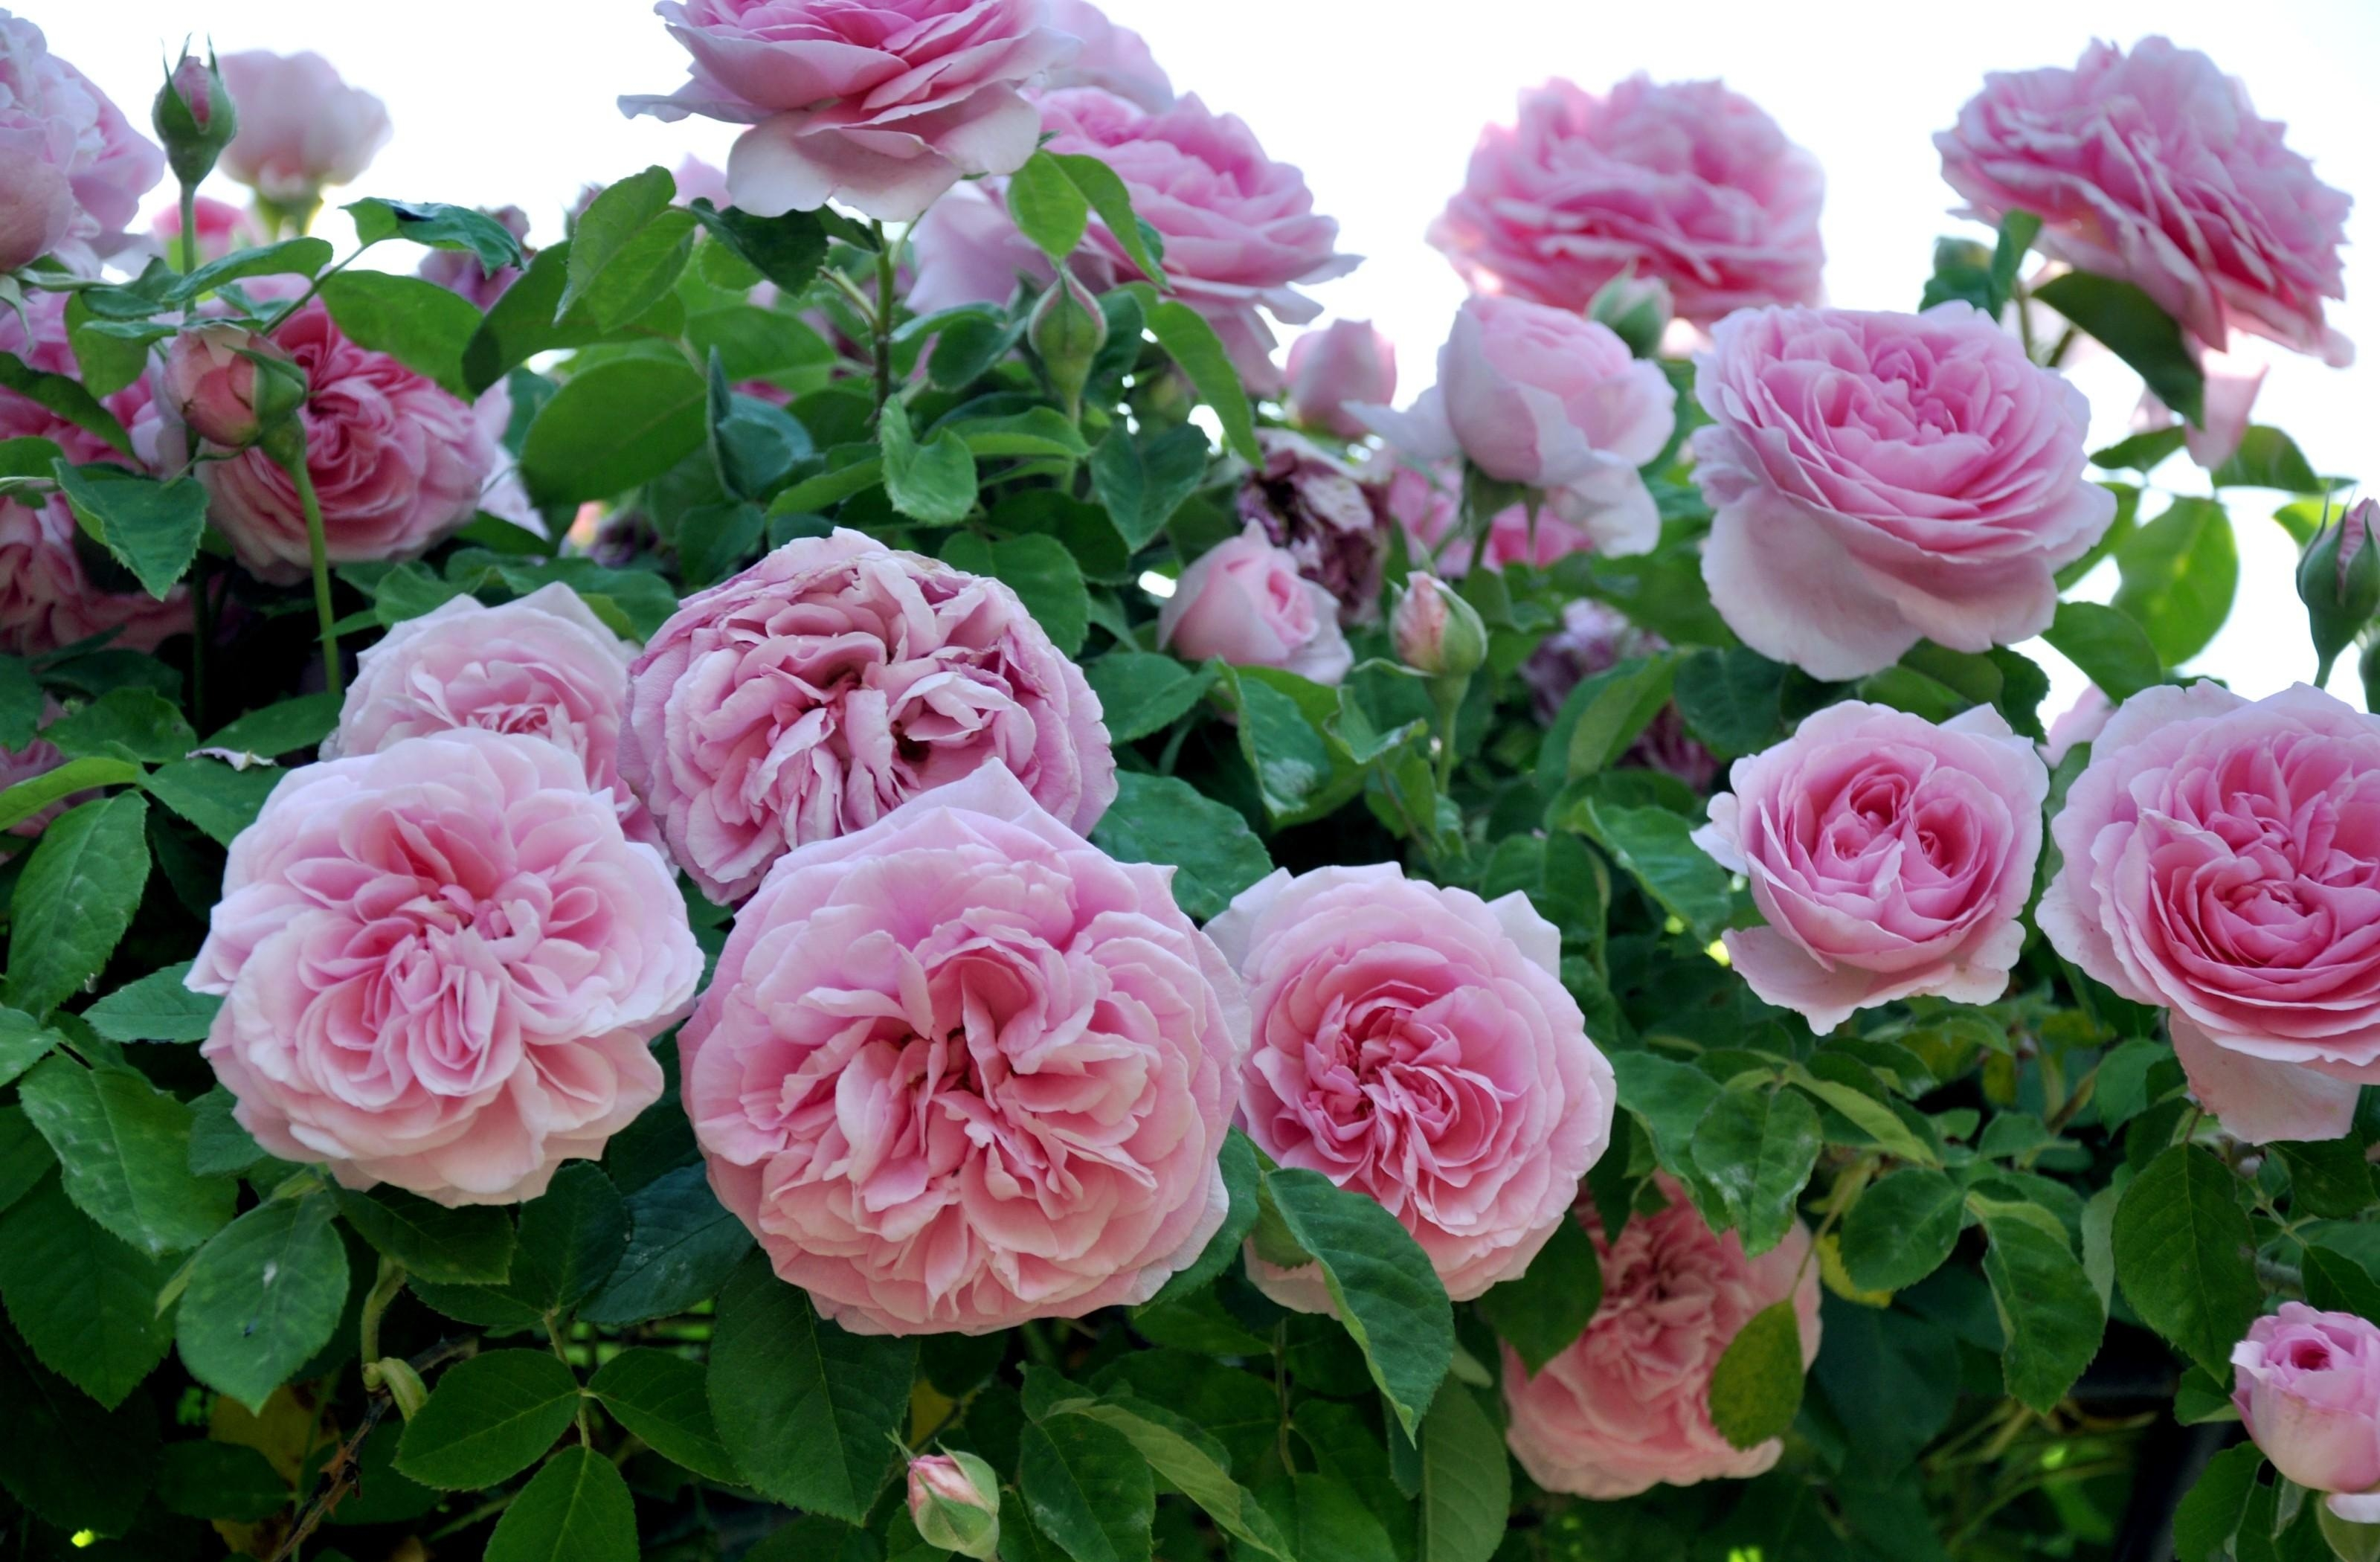 145286 download wallpaper Flowers, Roses, Pink, Close-Up, Garden screensavers and pictures for free